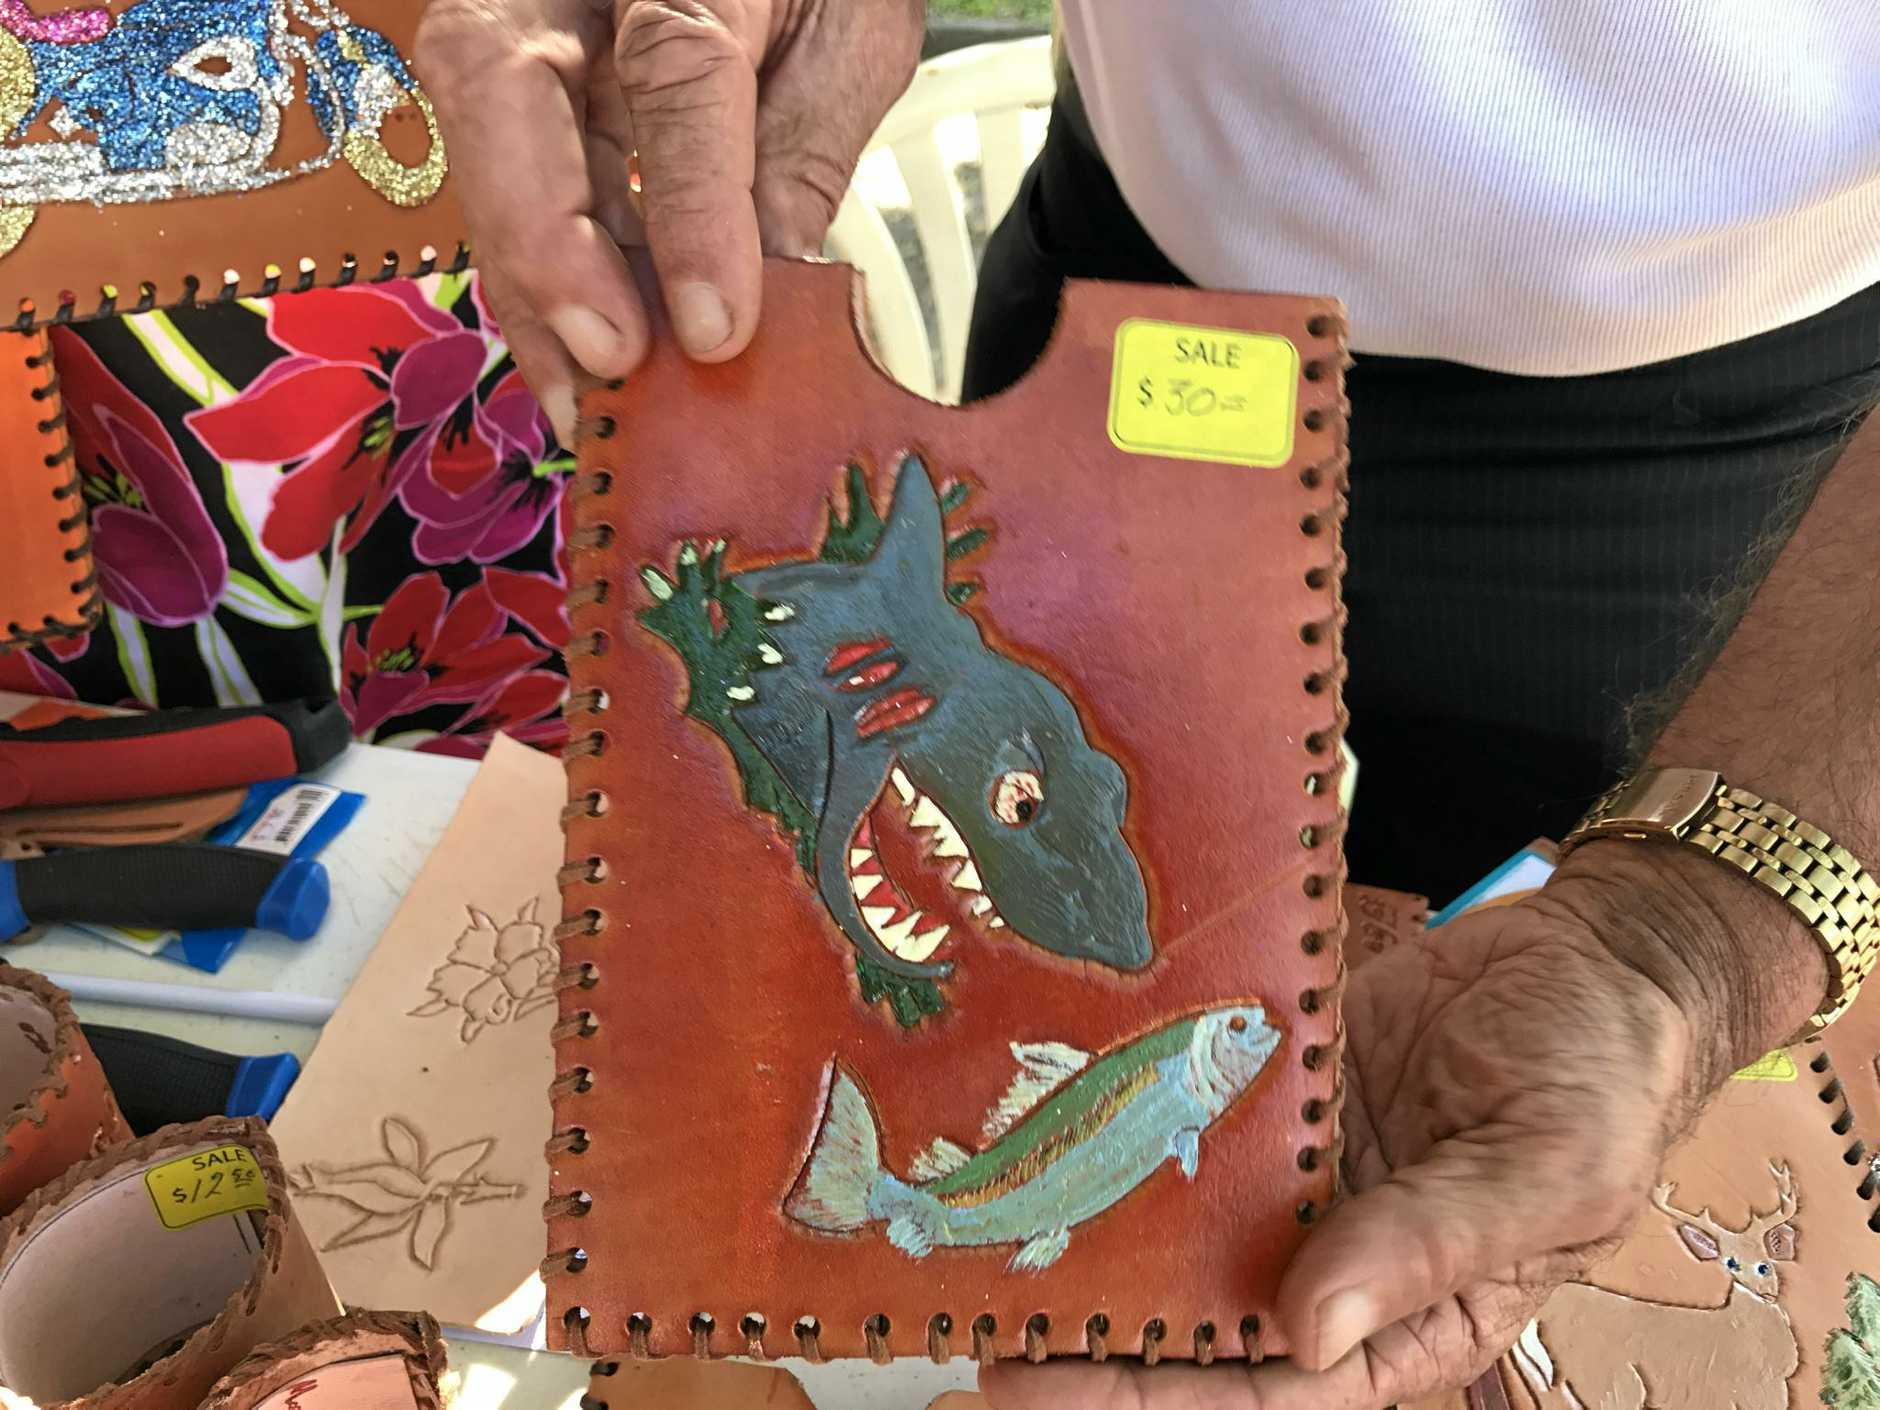 A tablet holder that tells a story, Peter Grabyn says on one side it shows a fisherman, and on the other side, a shark going after the fish.